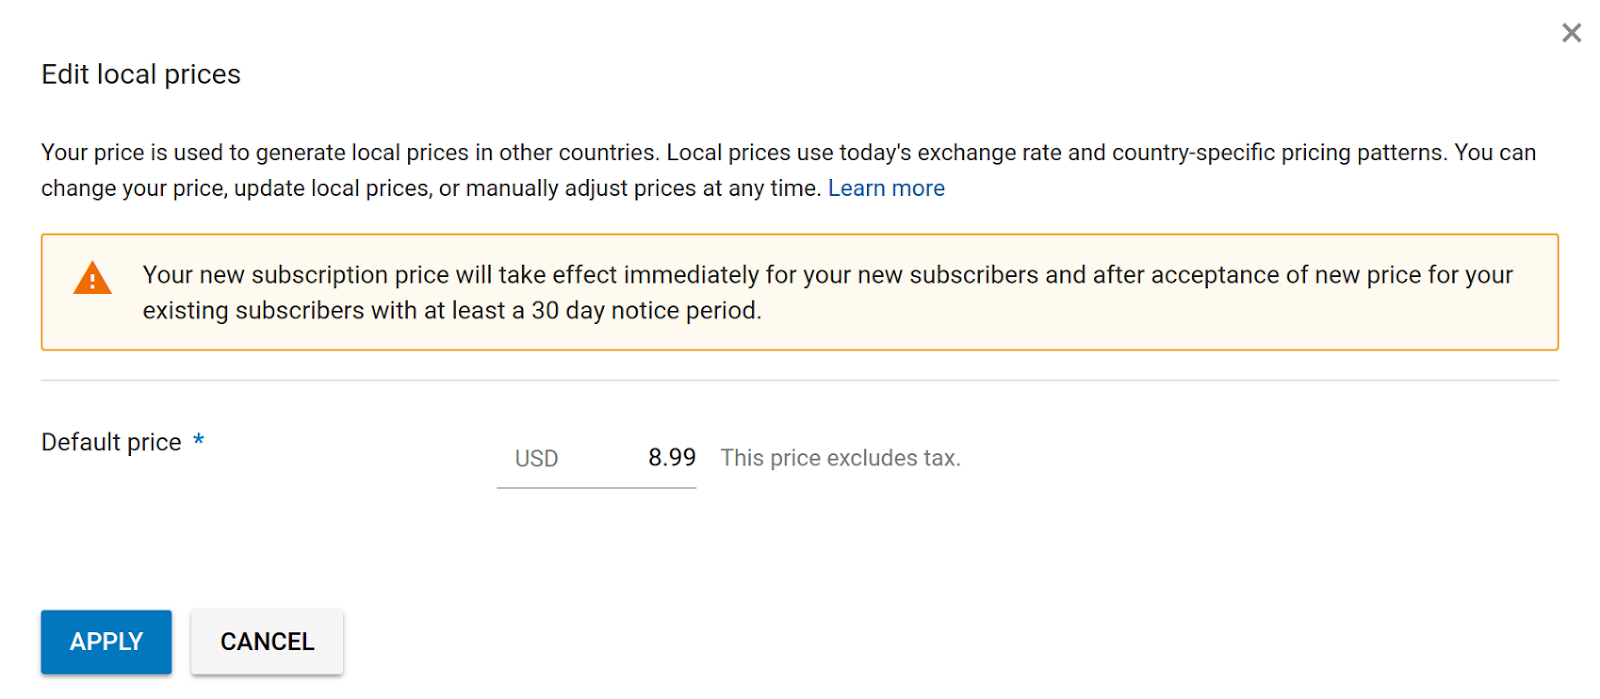 a warning appears when you edit the subscription price